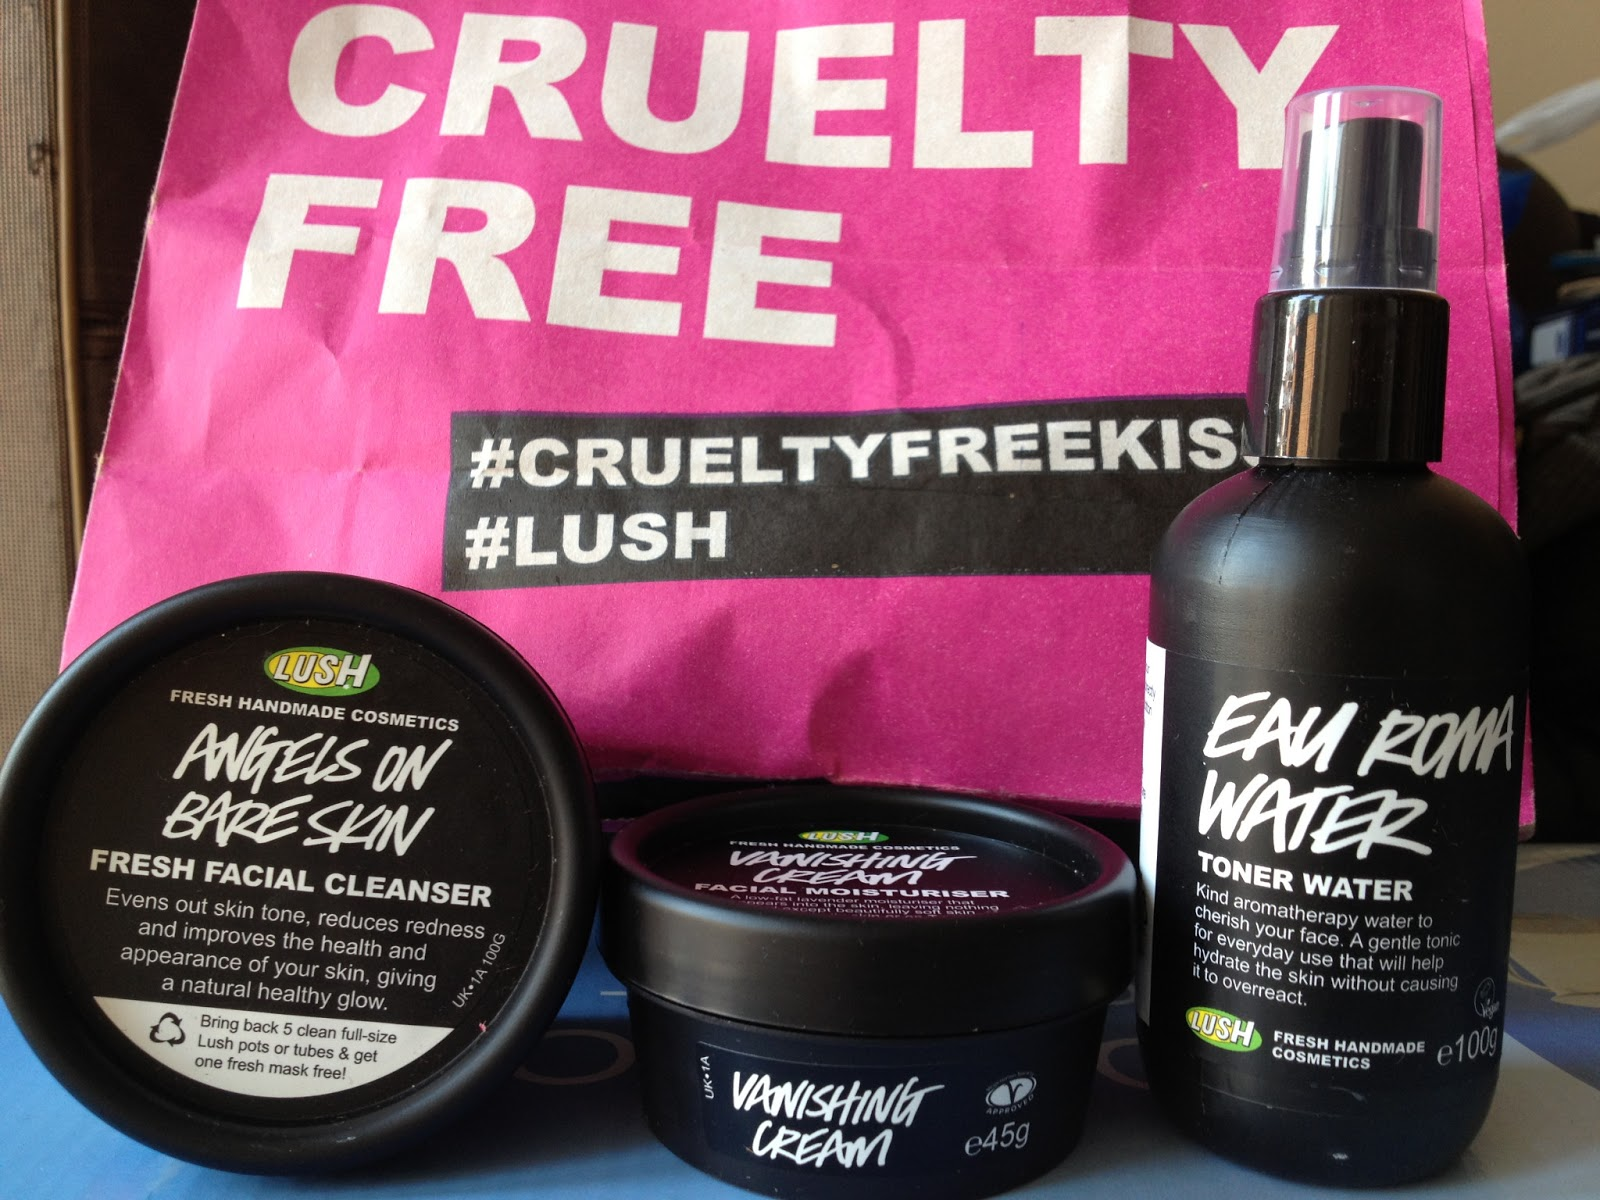 Lush Angels on Bare Skin cleanser, Vanishing Cream and Toner Water